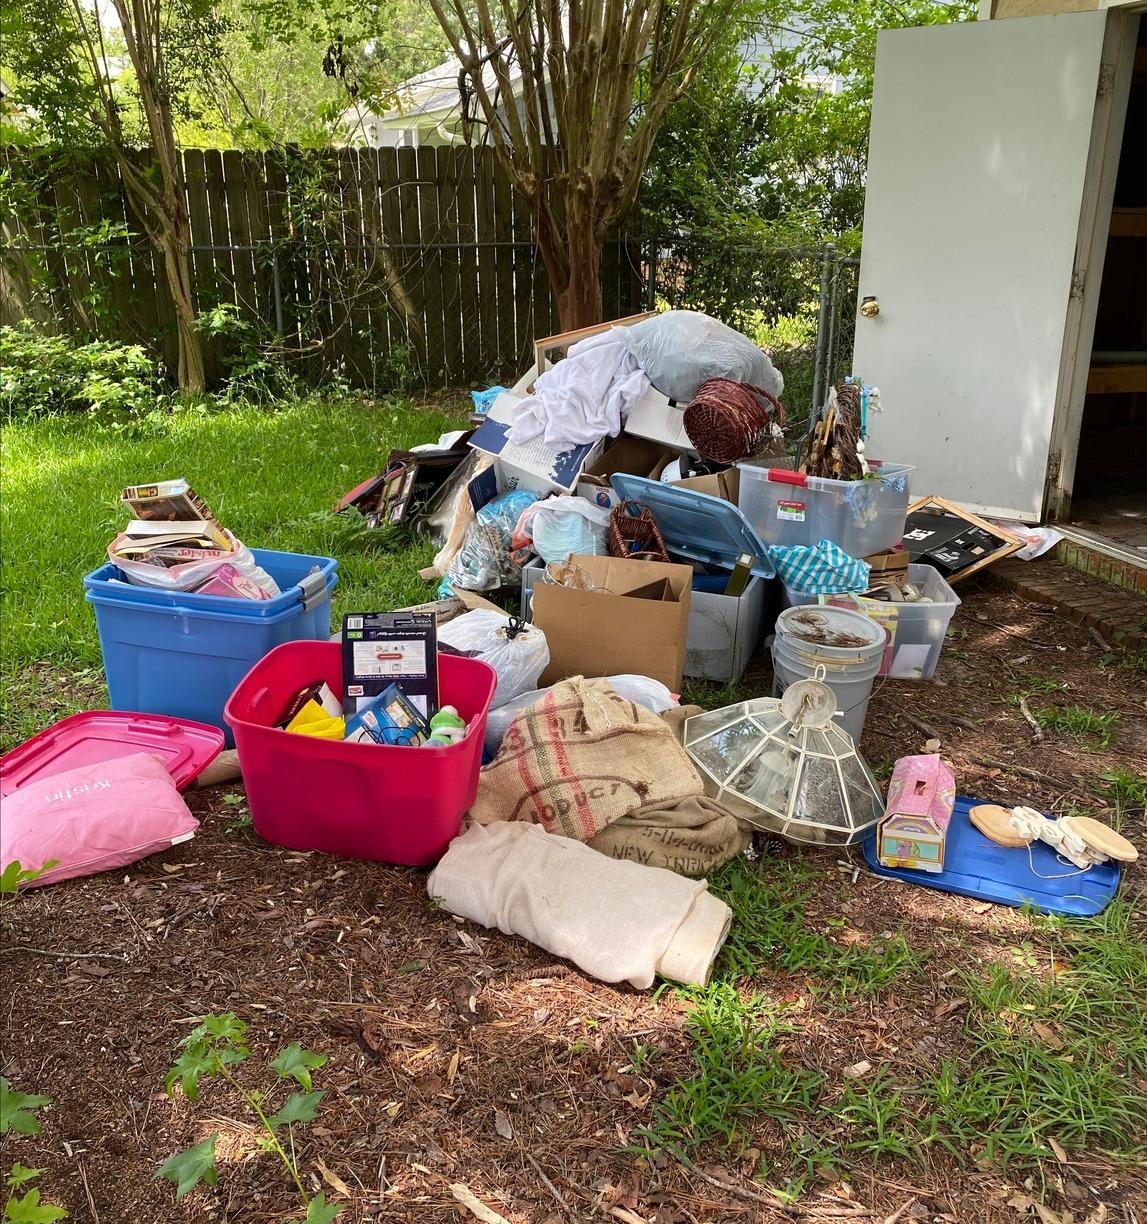 Junk Removal & Donation in Wilmington, NC - Before Photo